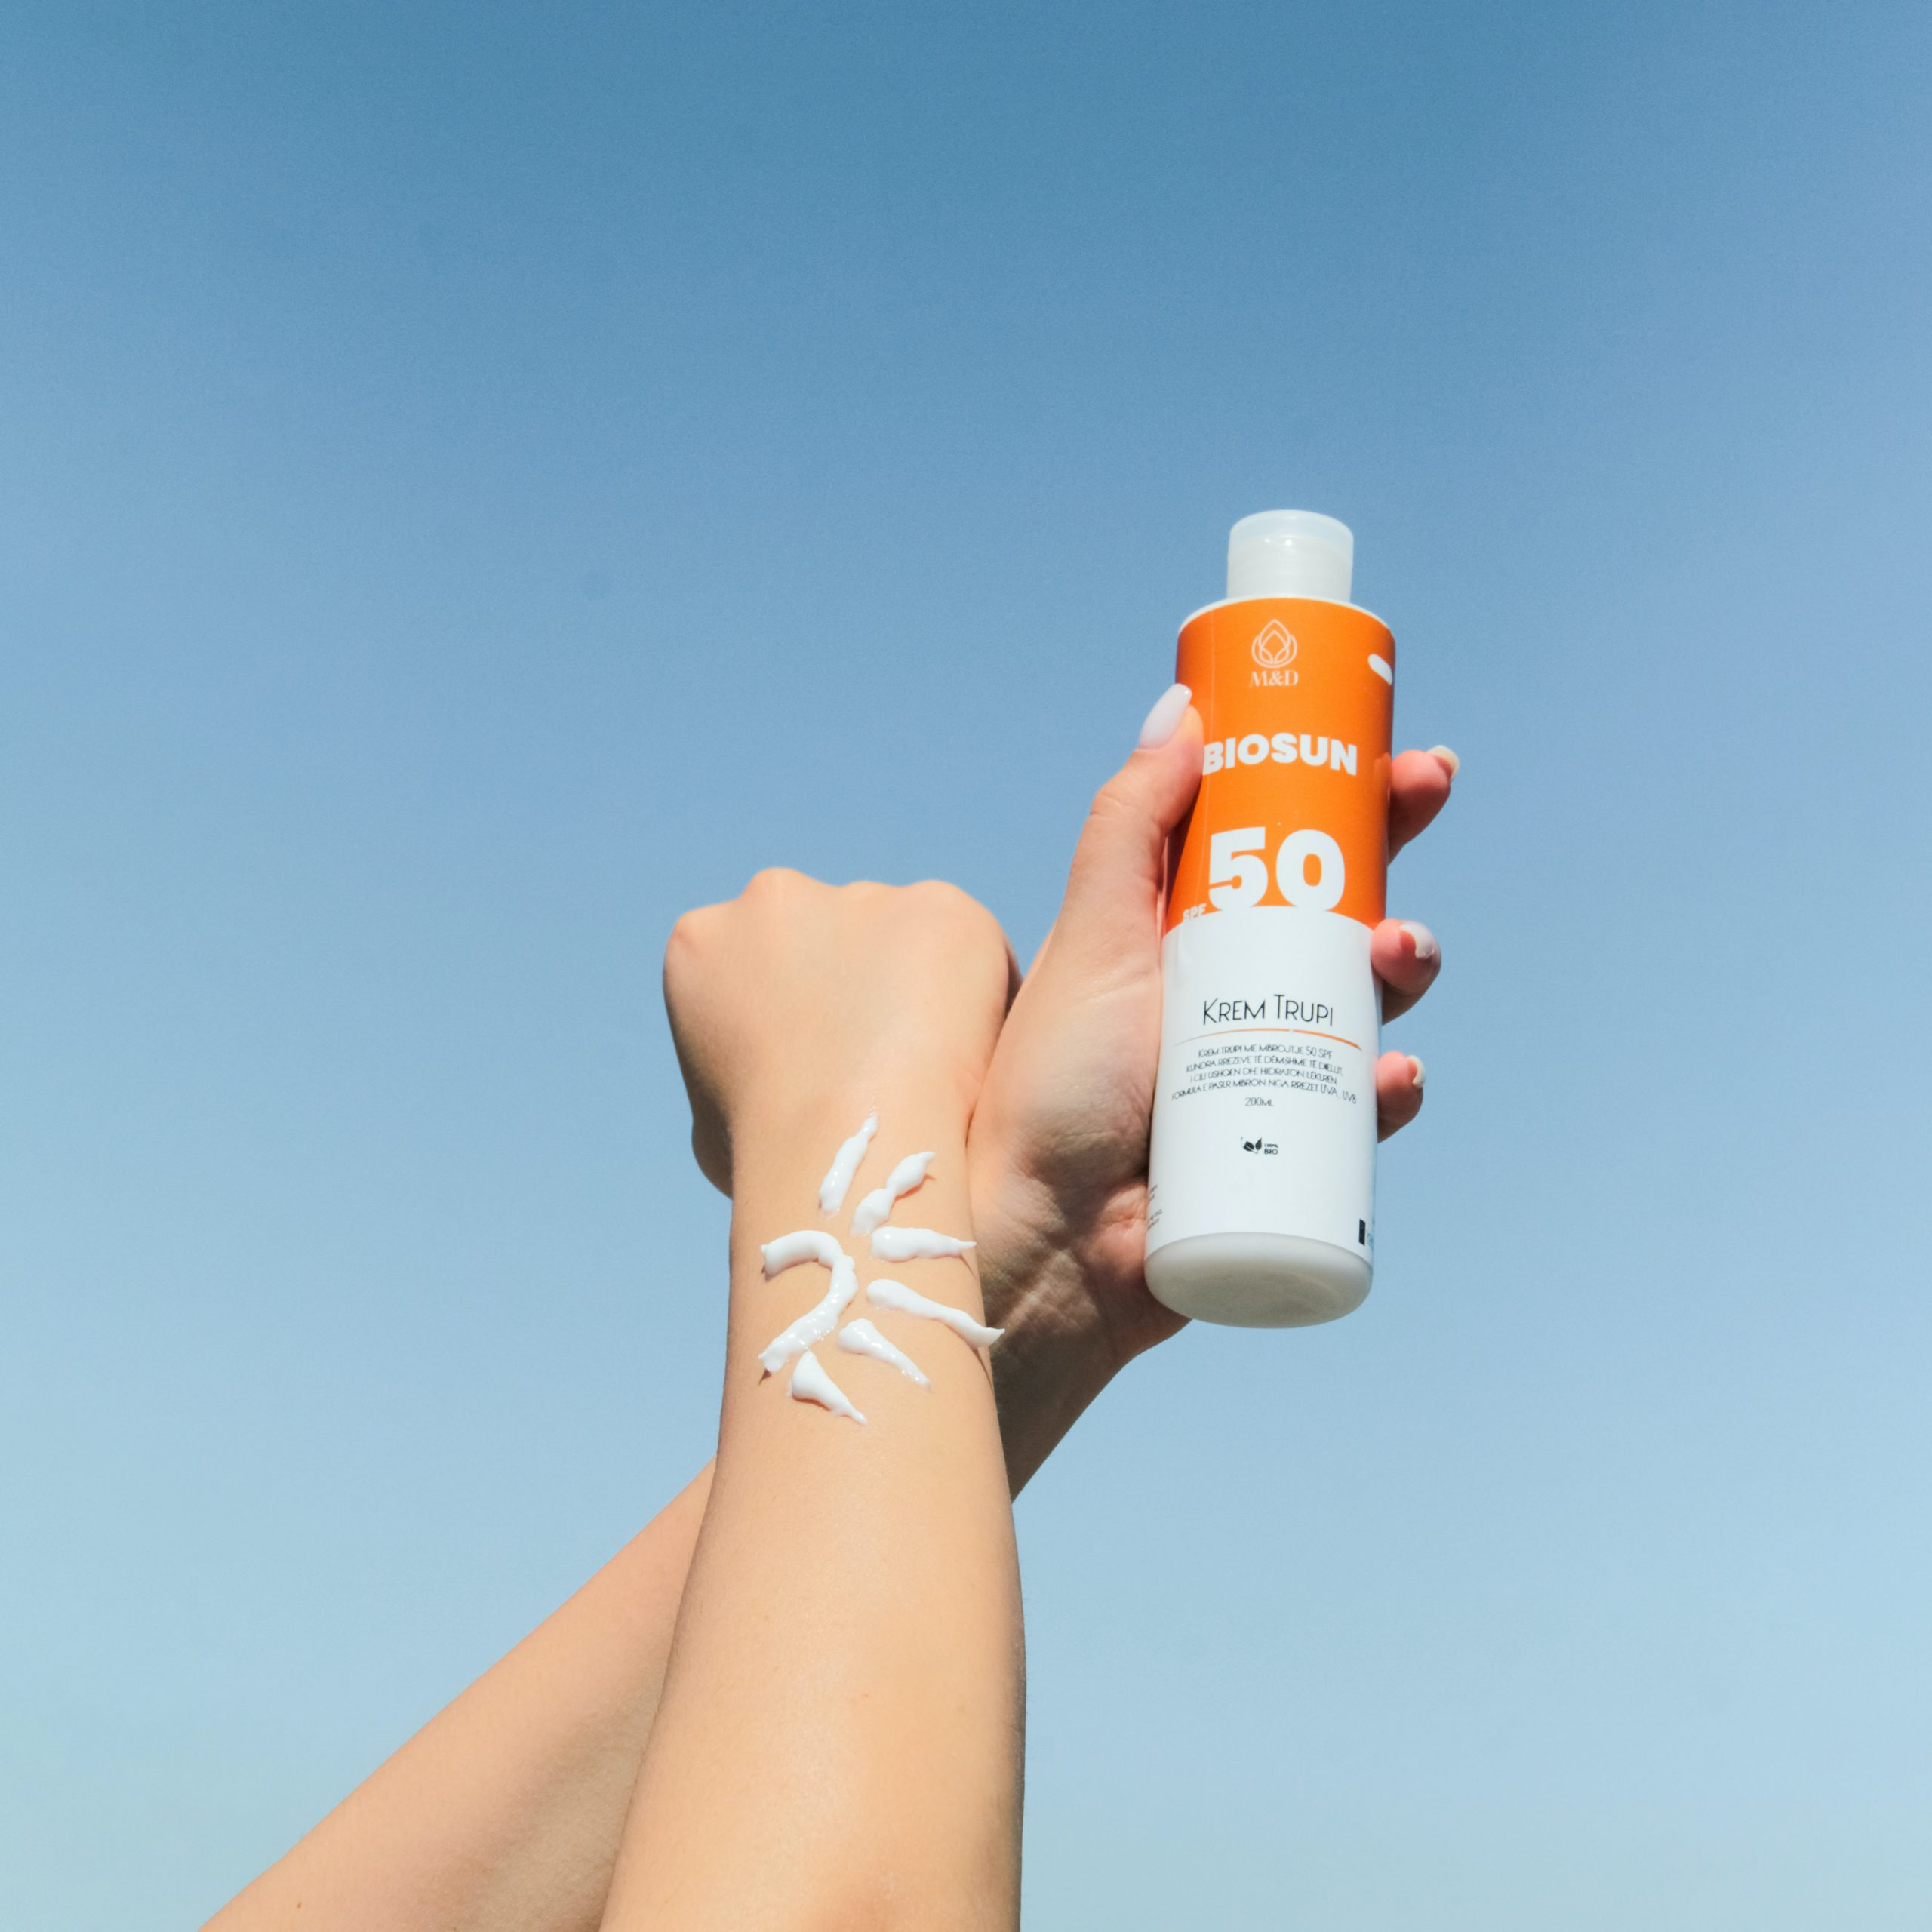 arm with sunscreen applied in sun design and hand holding sunscreen bottle